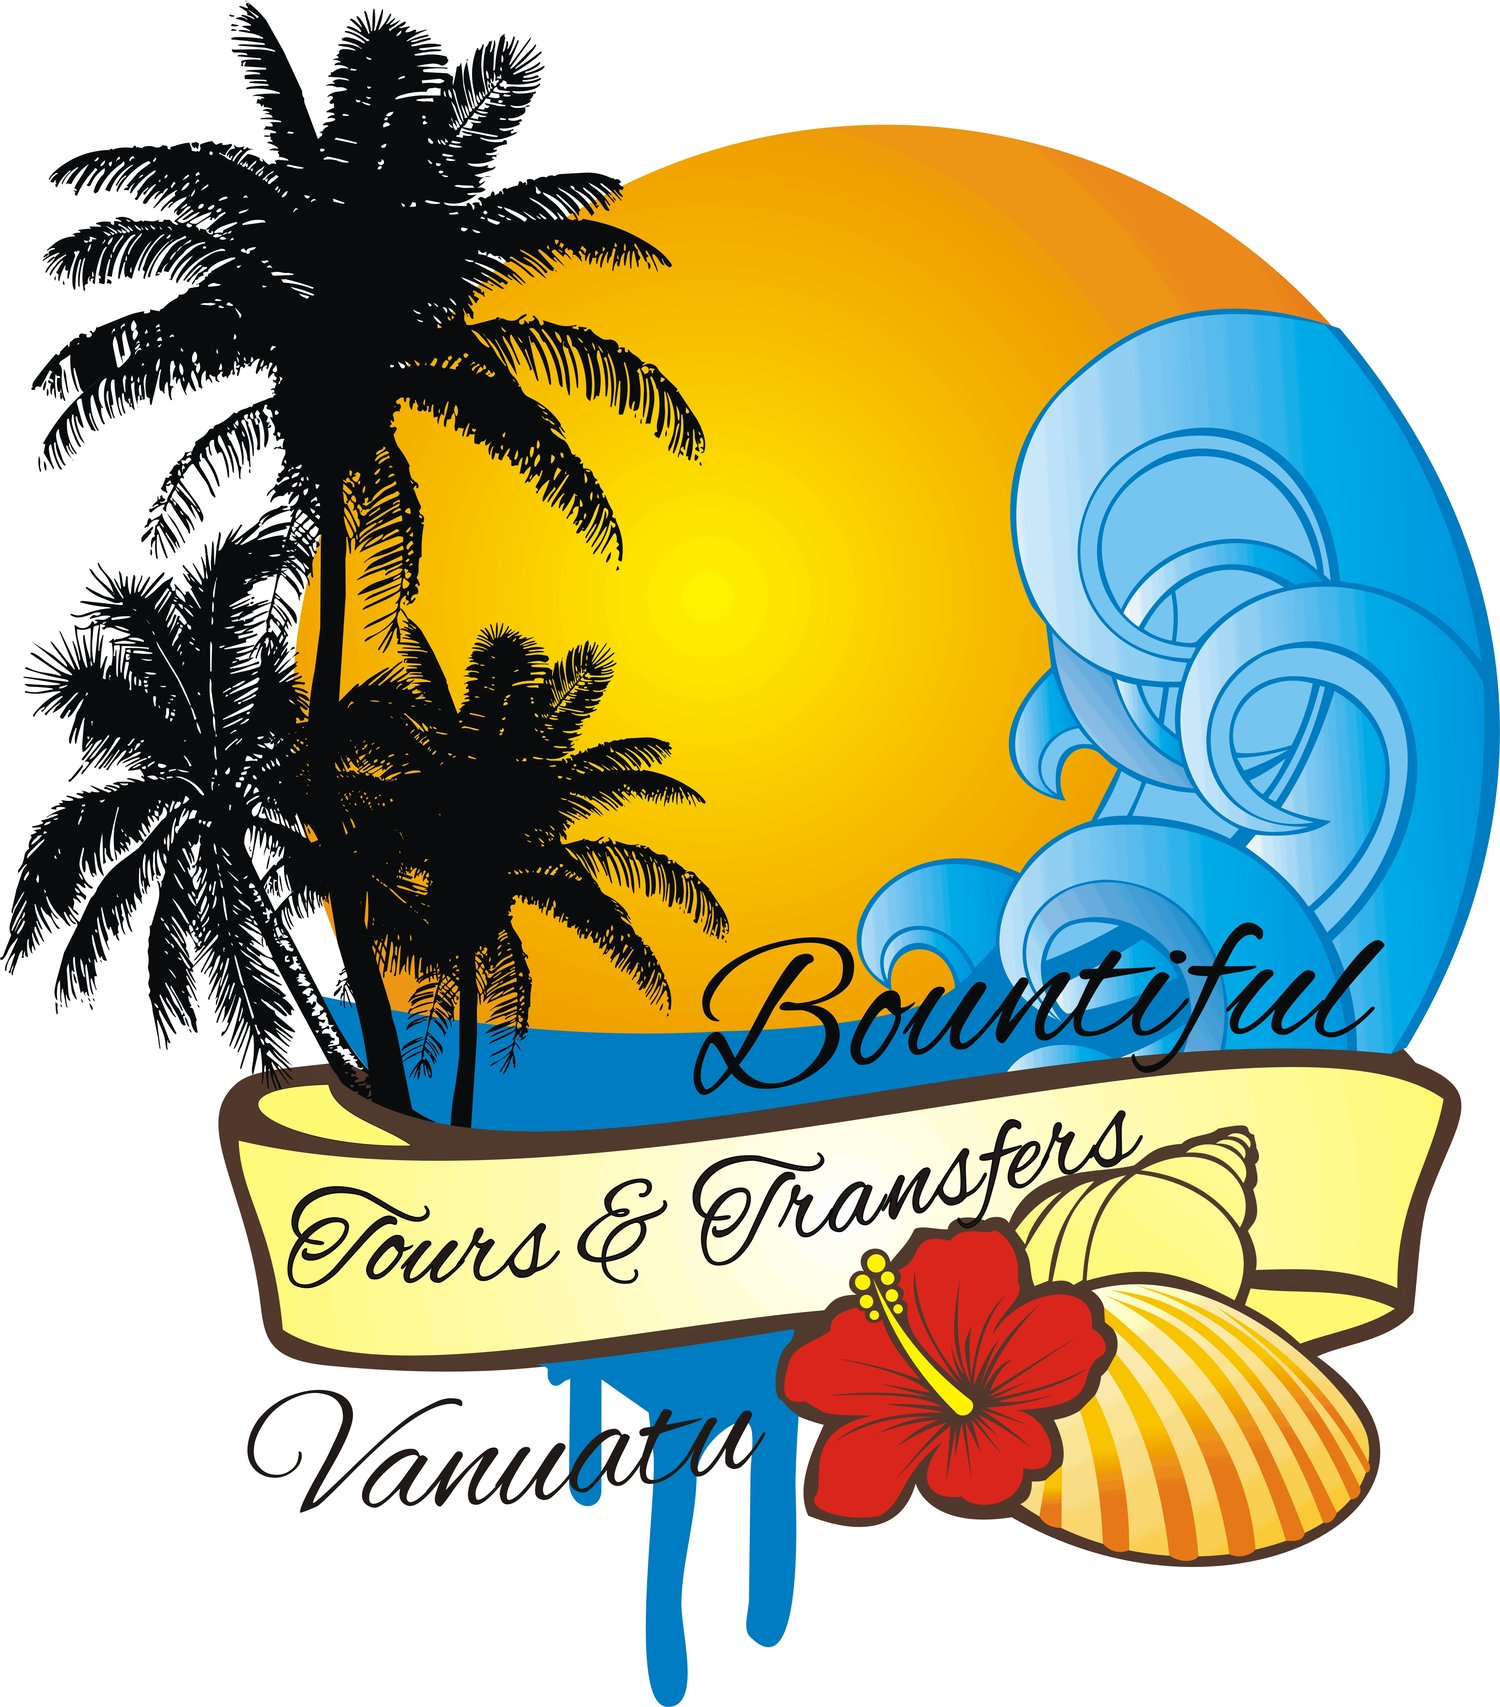 Bountiful Tours and Transfers Vanuatu